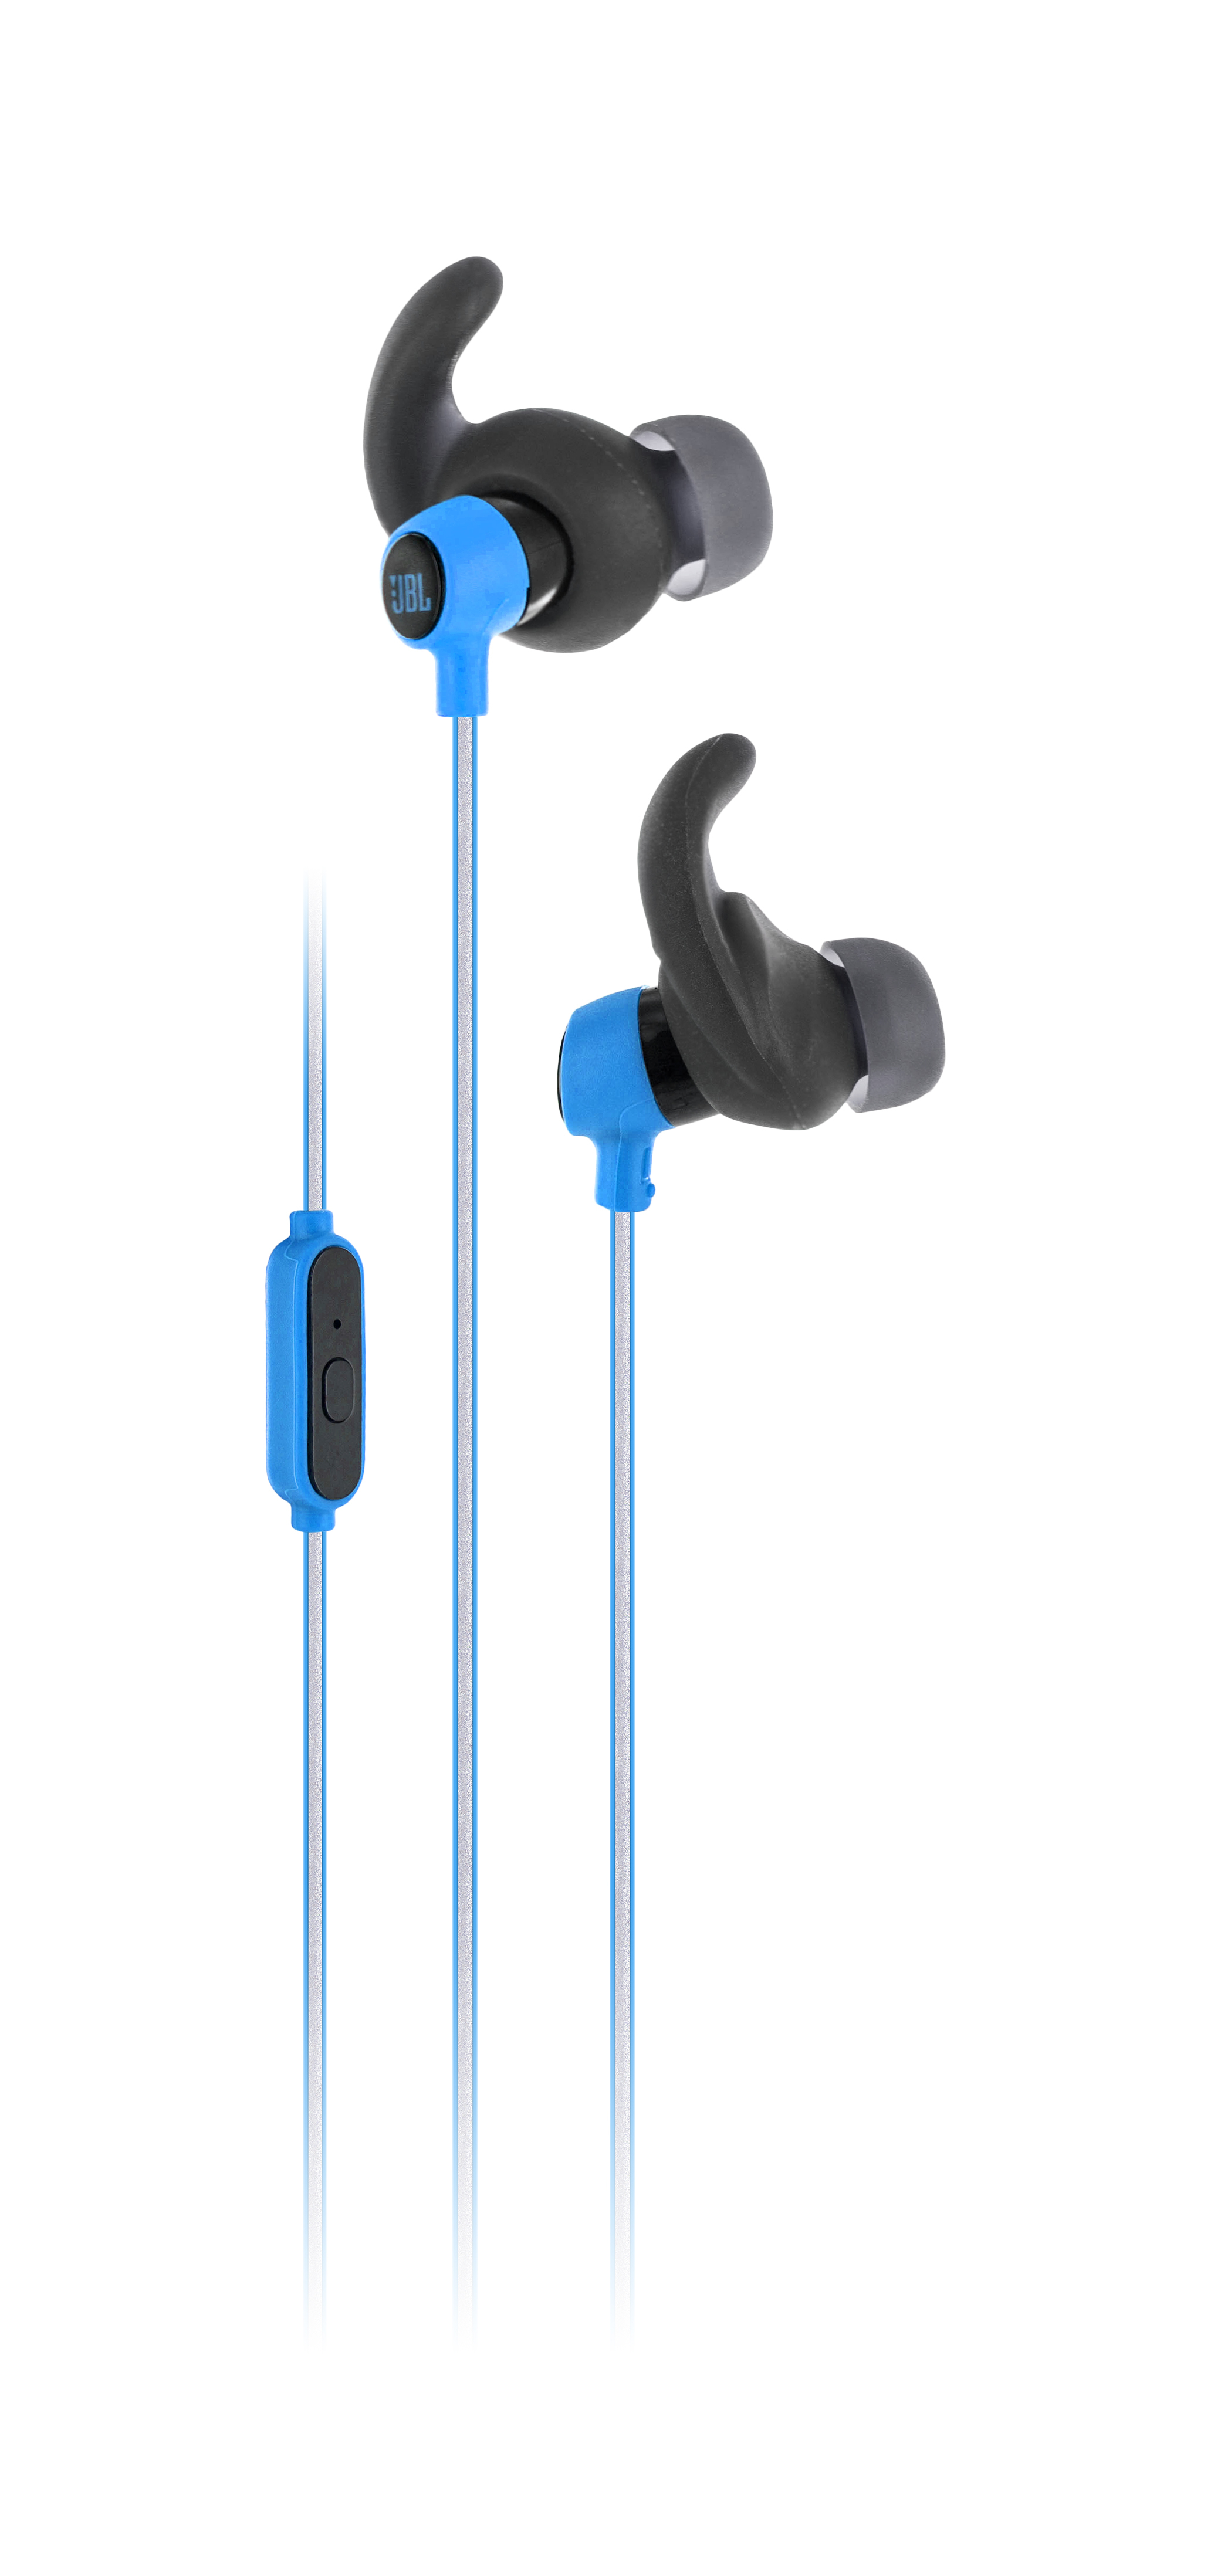 4ddb8950253 HARMAN Announces Its Lightest Wireless Sport Headphones - the JBL ® Reflect  Mini BT | Business Wire